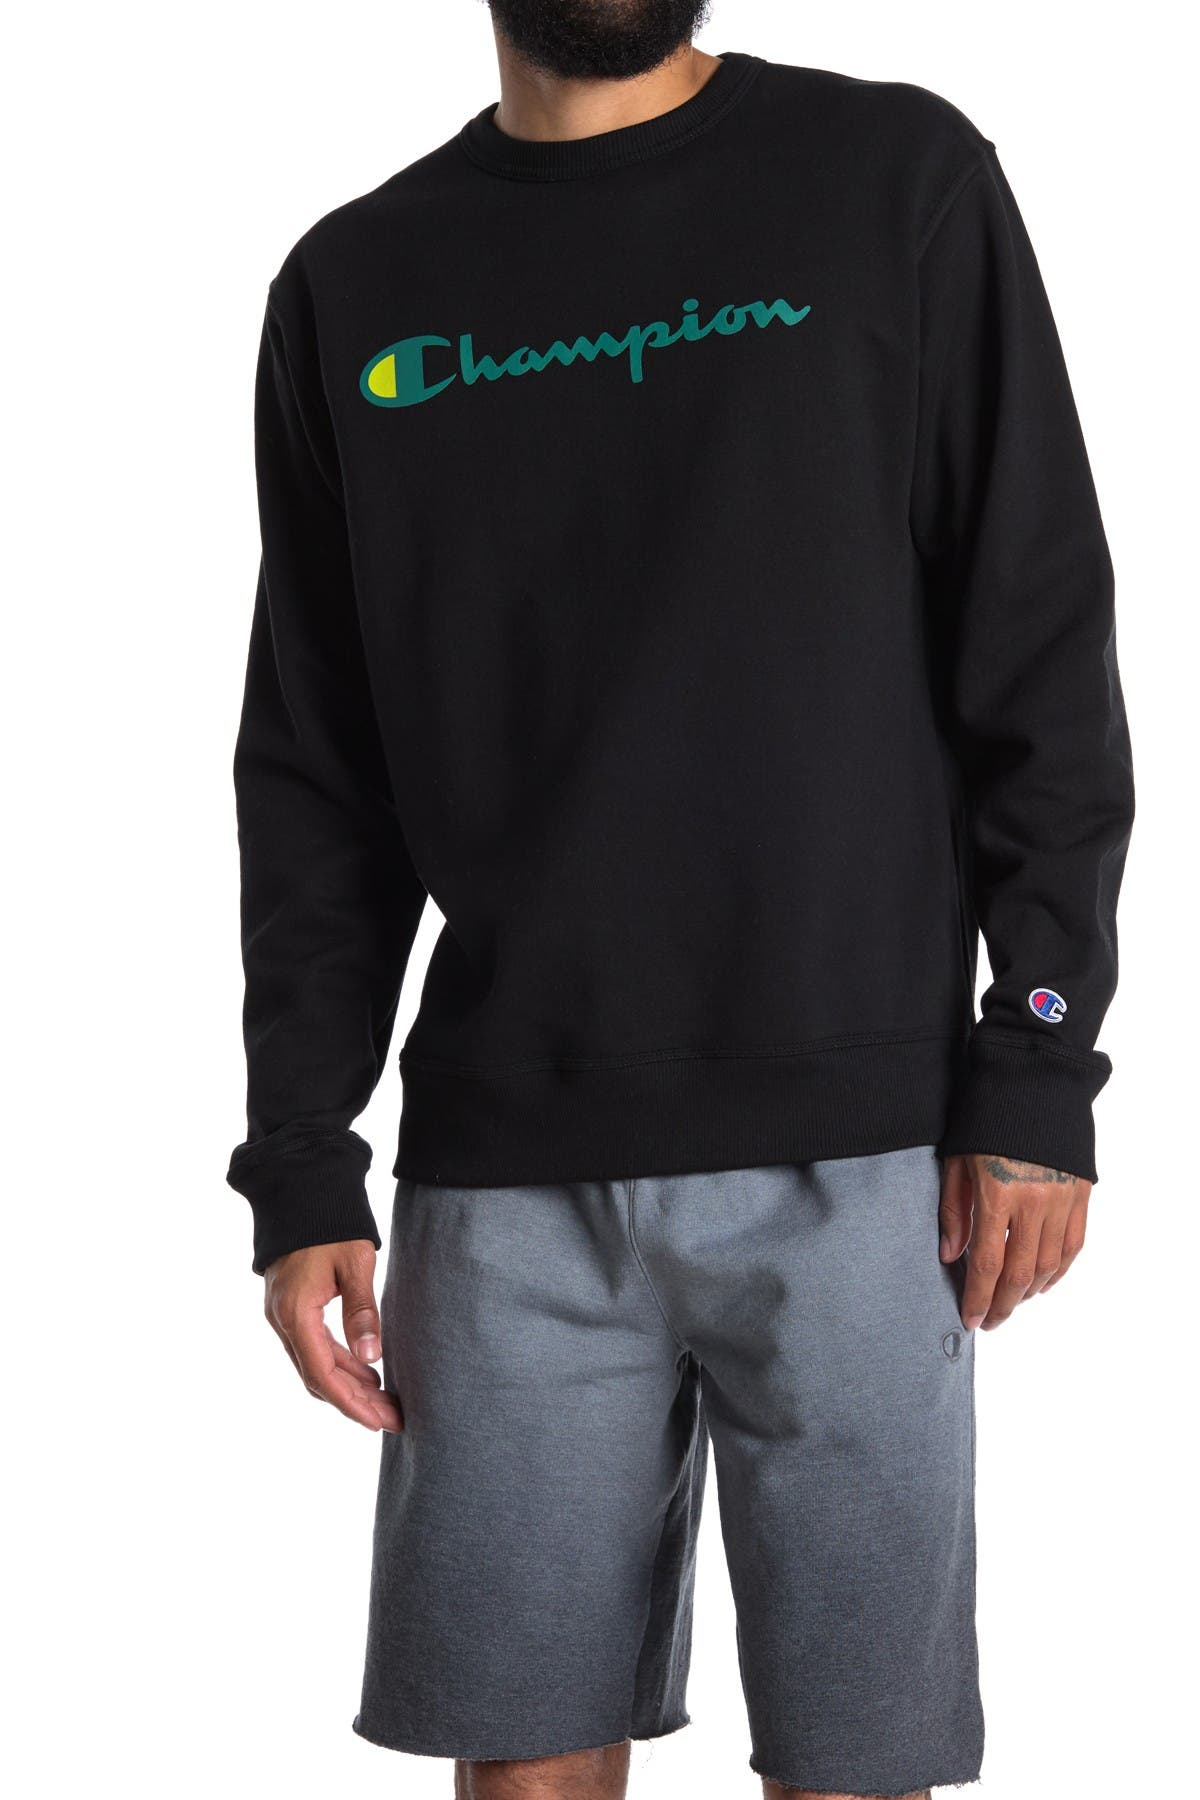 Details about  /Champion Graphic Powerblend Crew Neck Pullover gray XL  bys